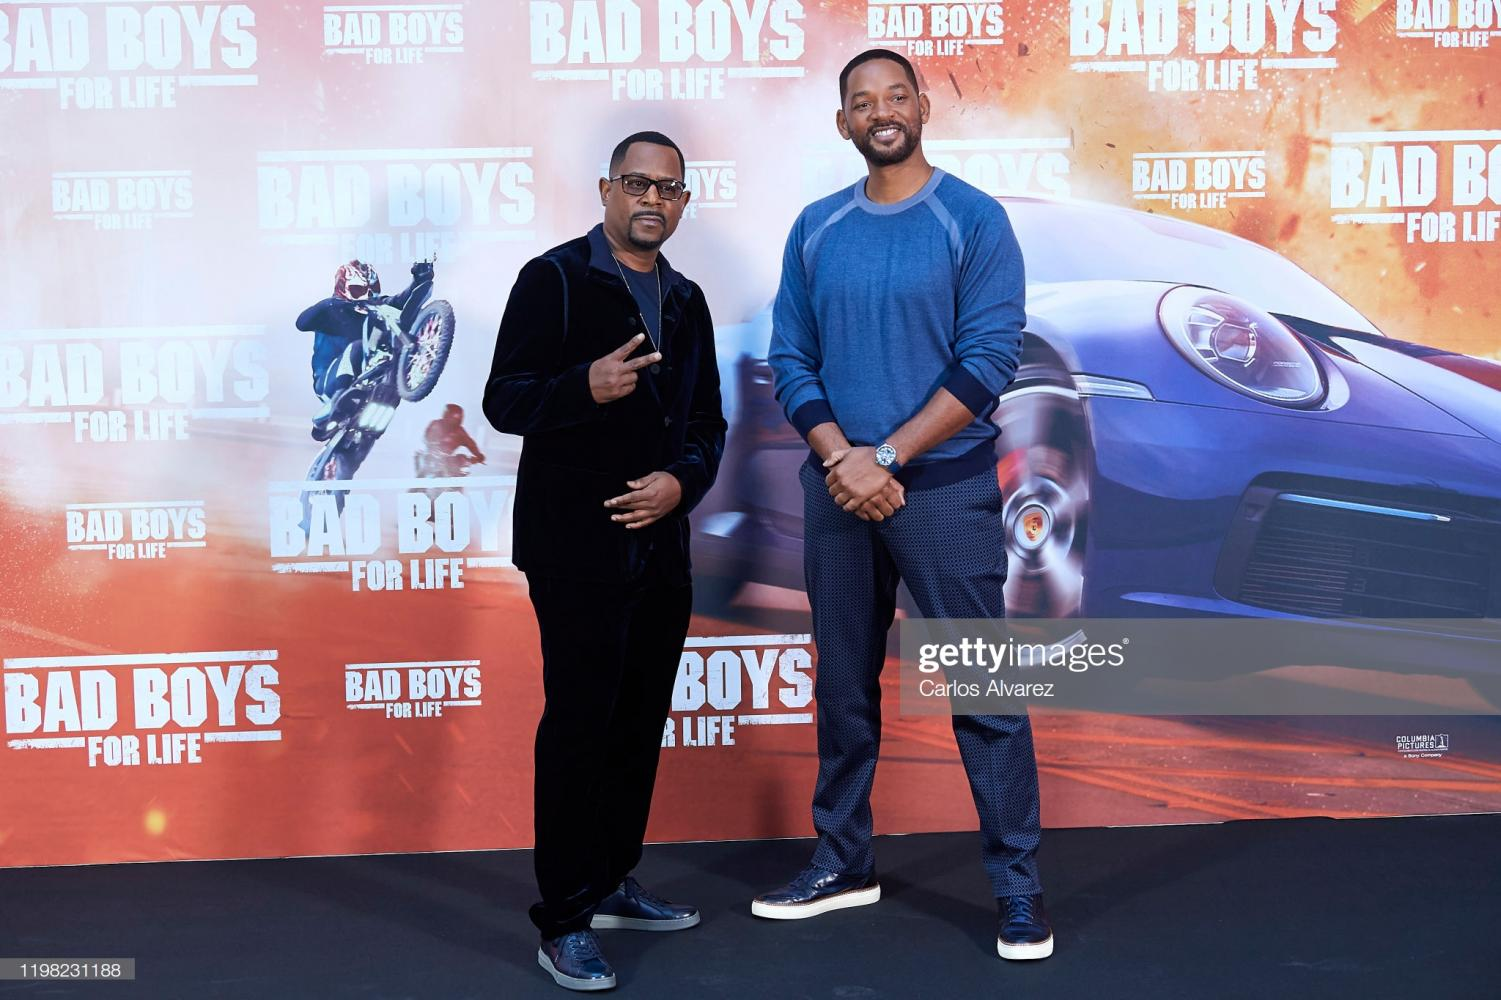 MADRID, SPAIN - JANUARY 08: Actors Will Smith (R) and Martin Lawrence (L) attend 'Bad Boys For Life' photocall at the Villamagna Hotel on January 08, 2020 in Madrid, Spain.